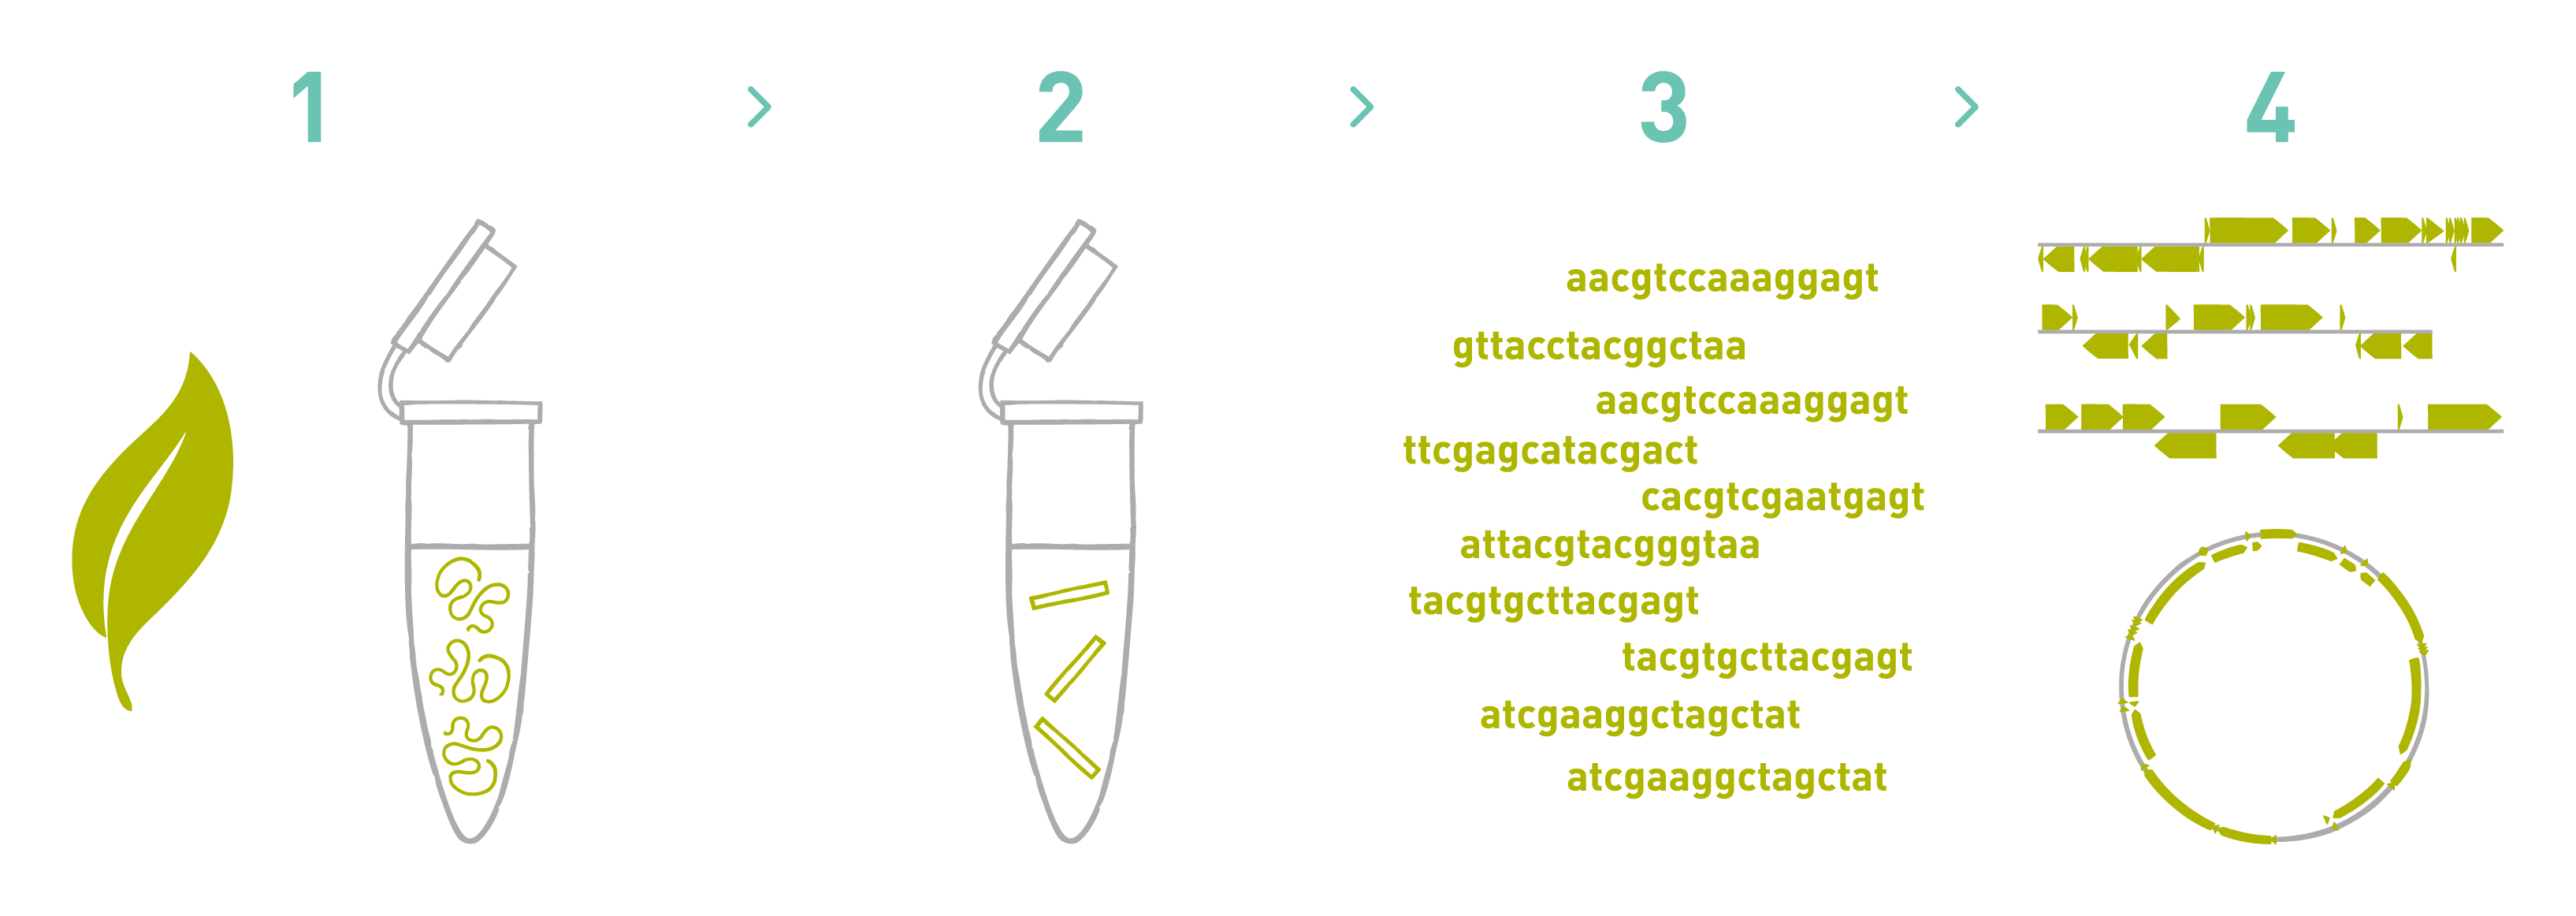 Eukaryotic genome sequencing service - AllGenetics